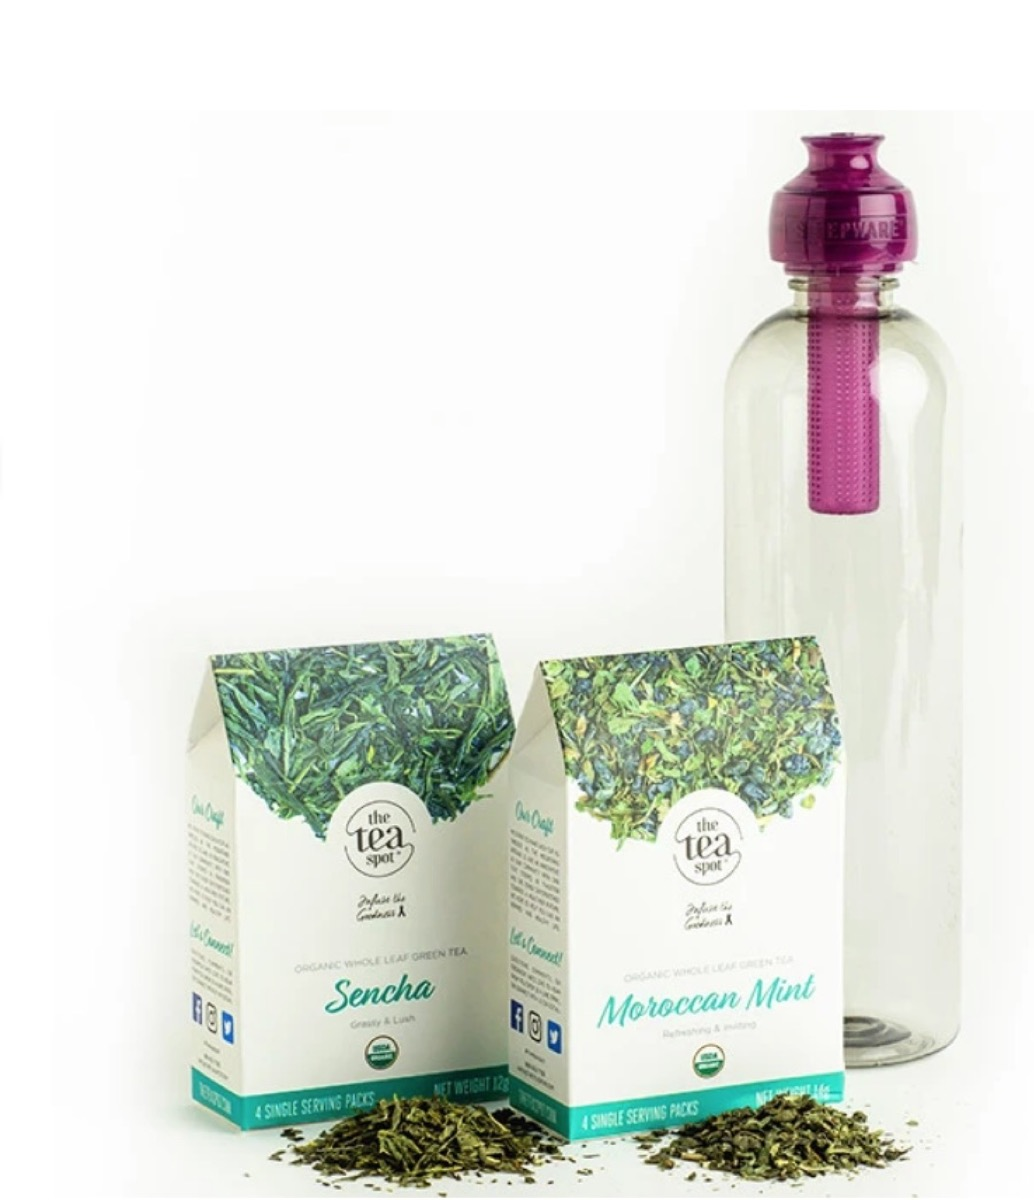 two cardboard containers of tea and water bottle with purple spot